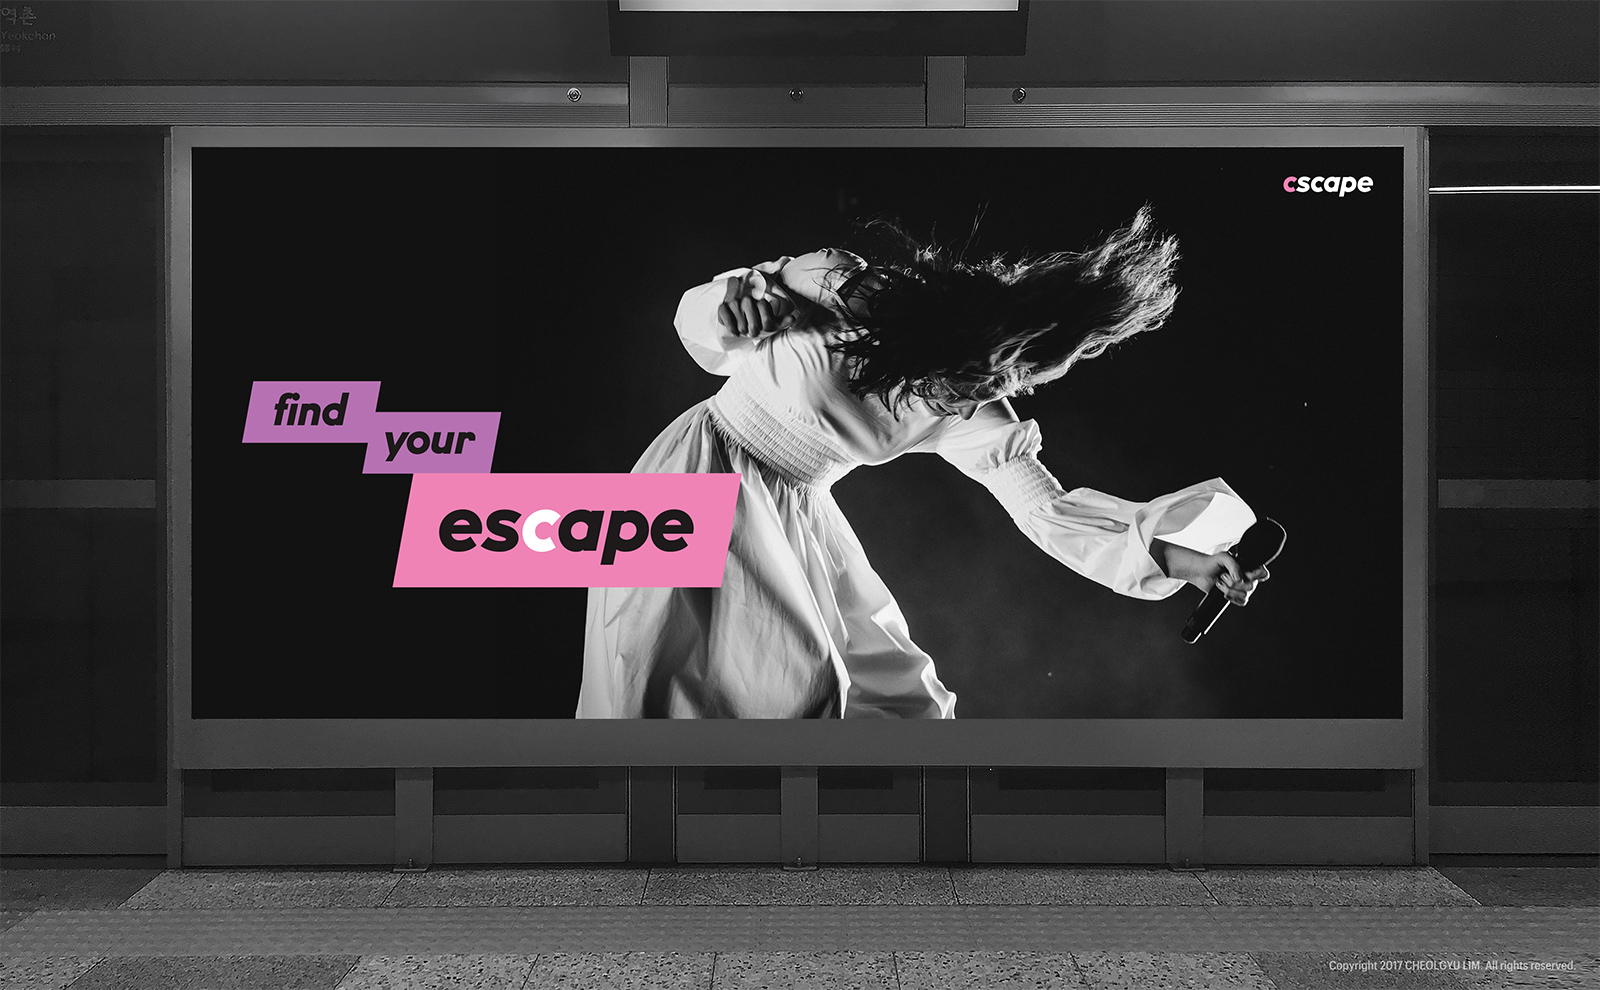 CScape subway transit billboard in Calgary